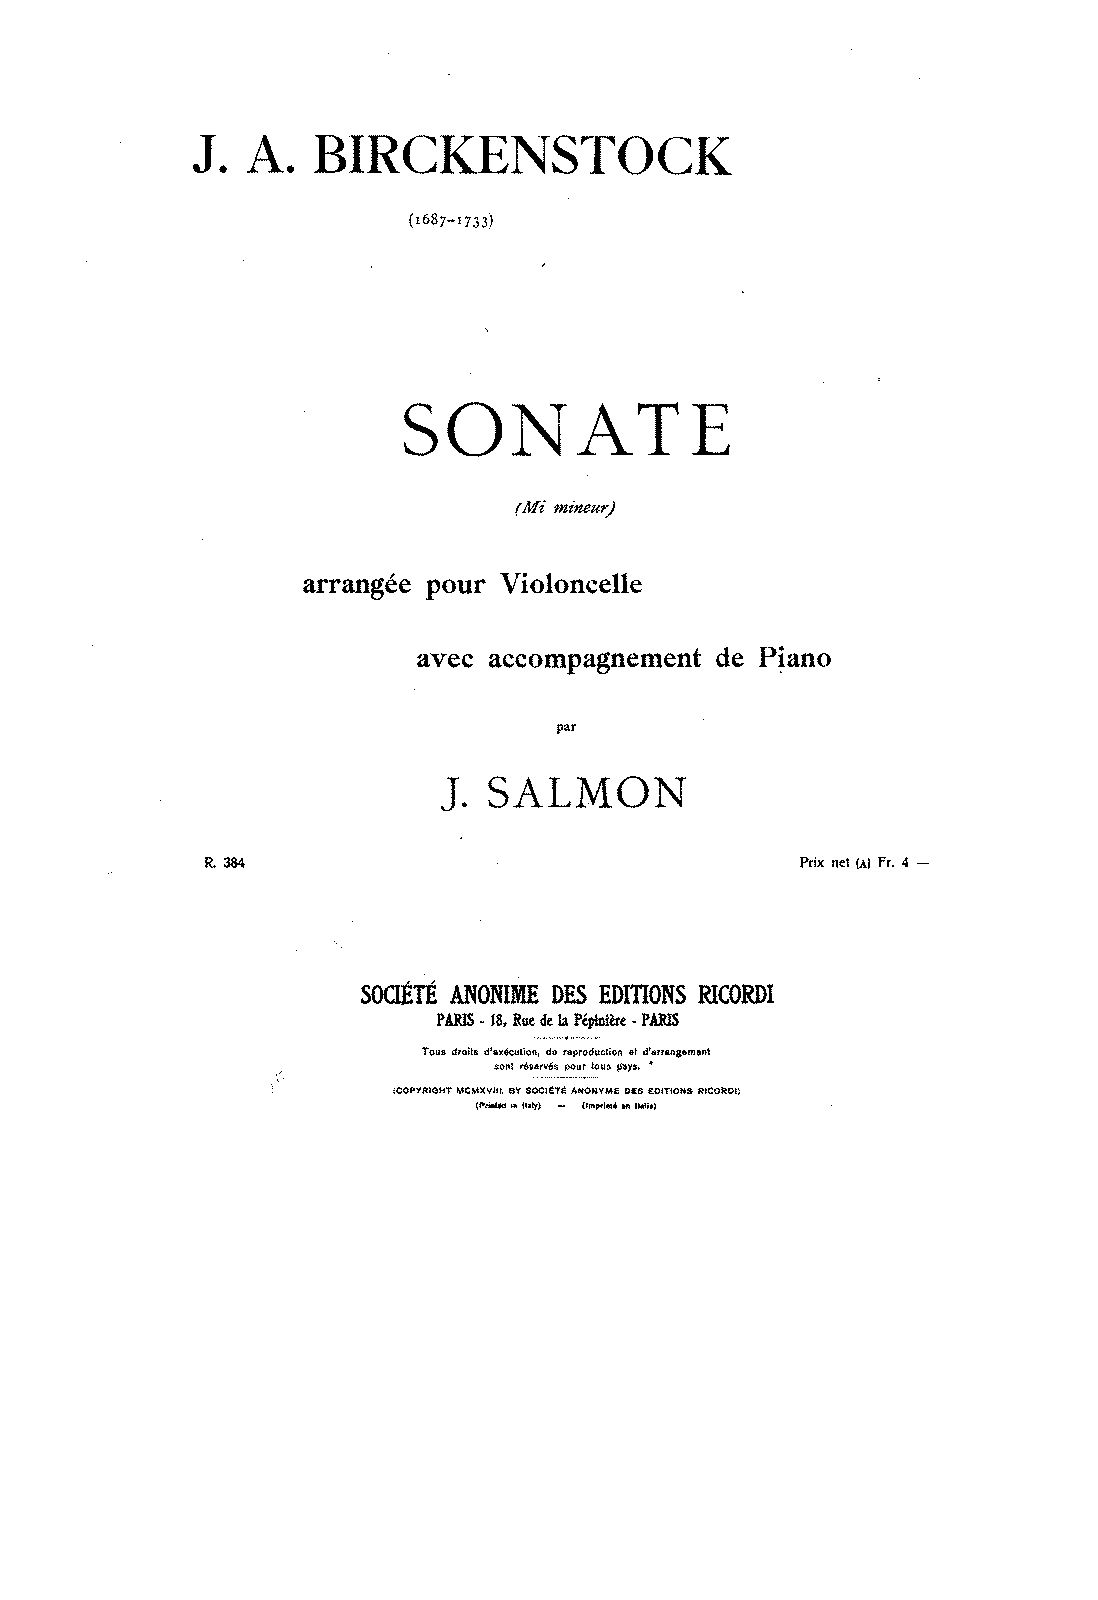 PMLP148984-Birckenstock - Sonata in E minor for cello and piano (Salmon) piano.pdf